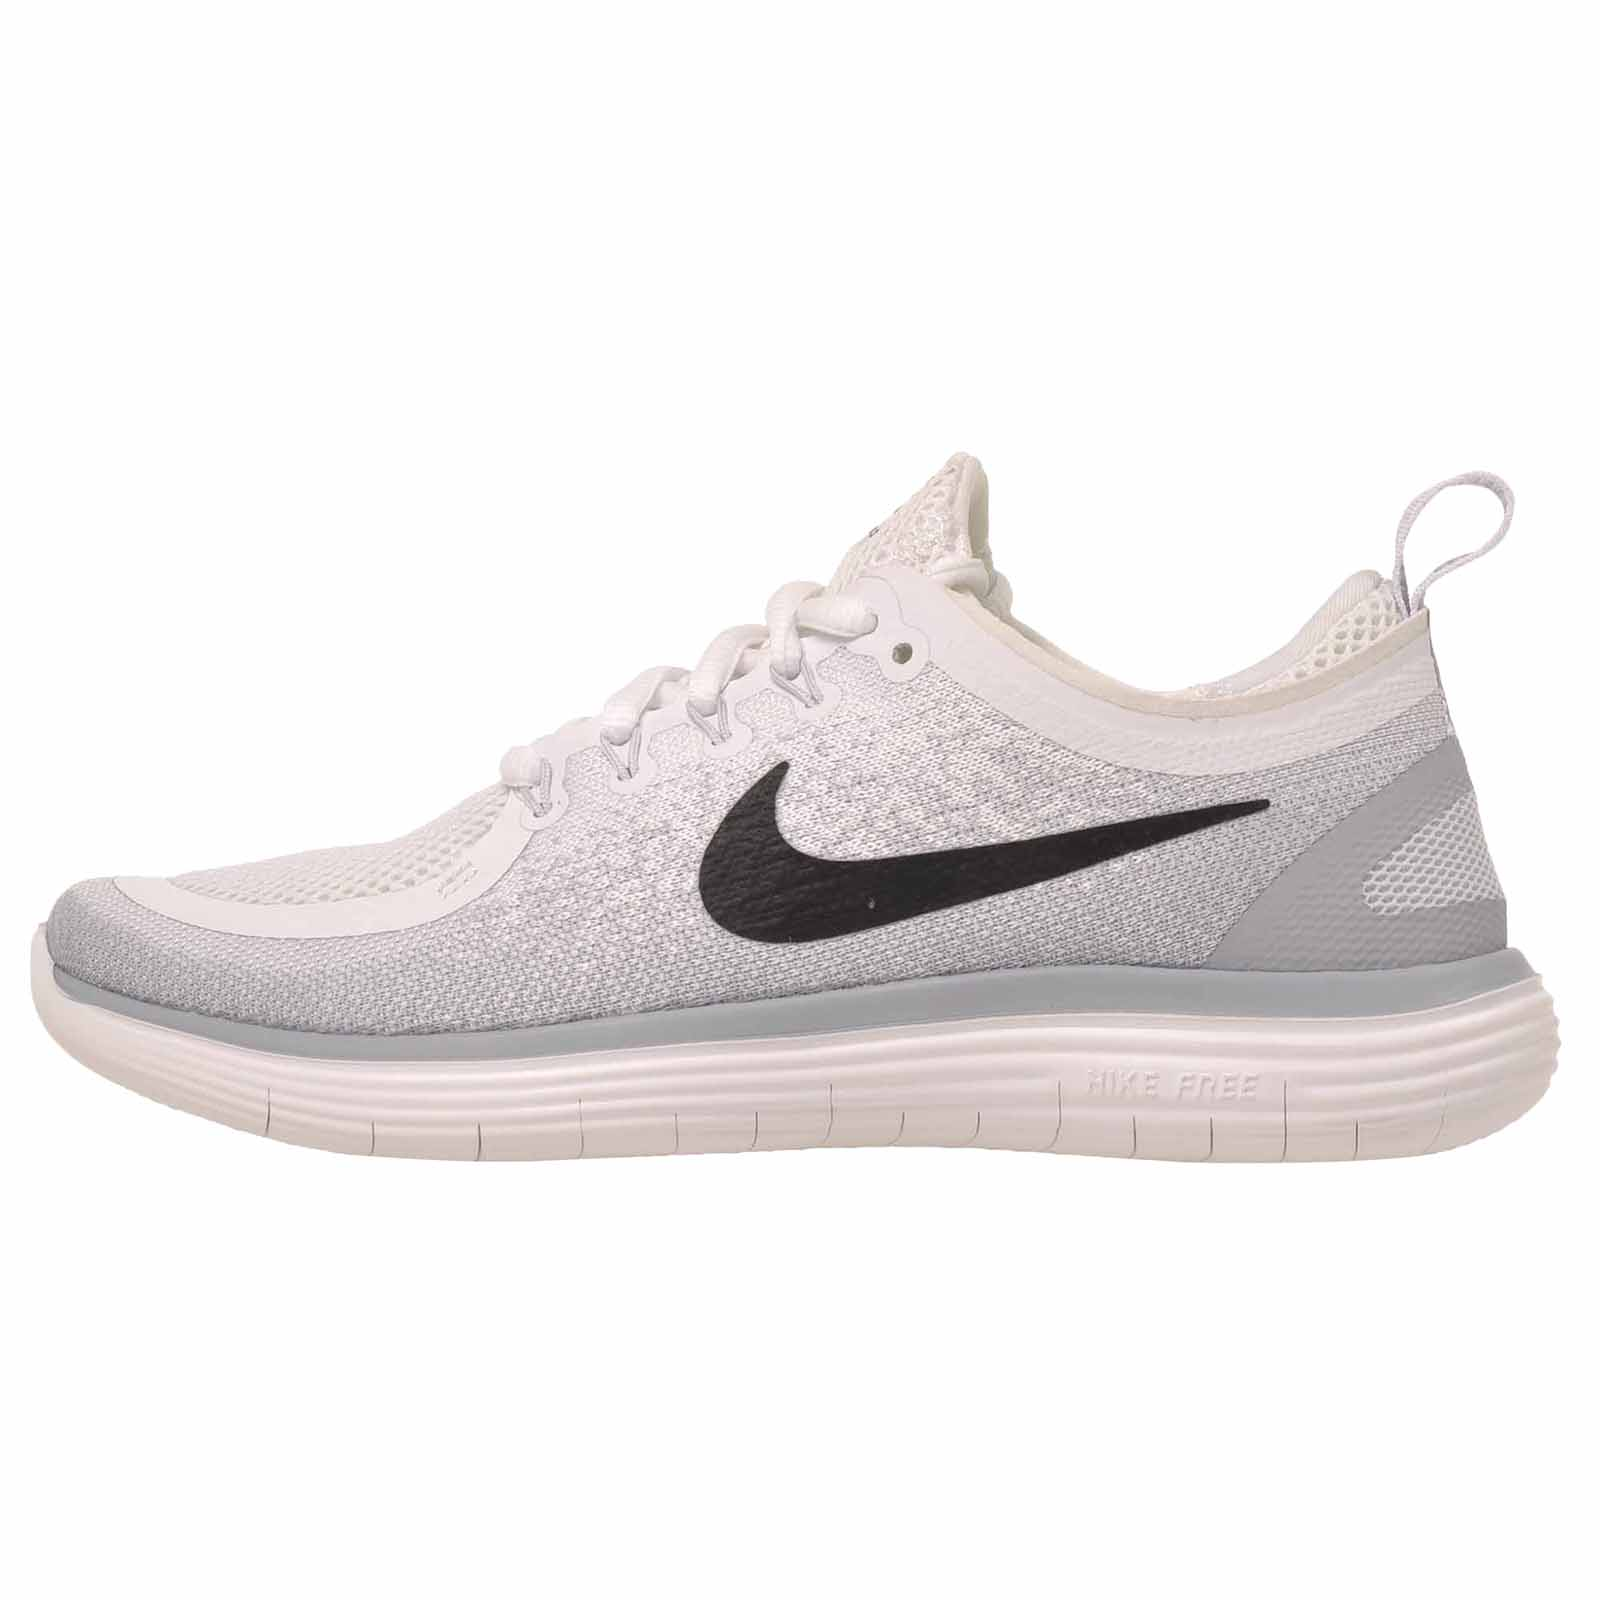 official photos 6d526 3436d Nike Wmns Free RN Distance 2 Running Womens Shoes White Black 863776-100